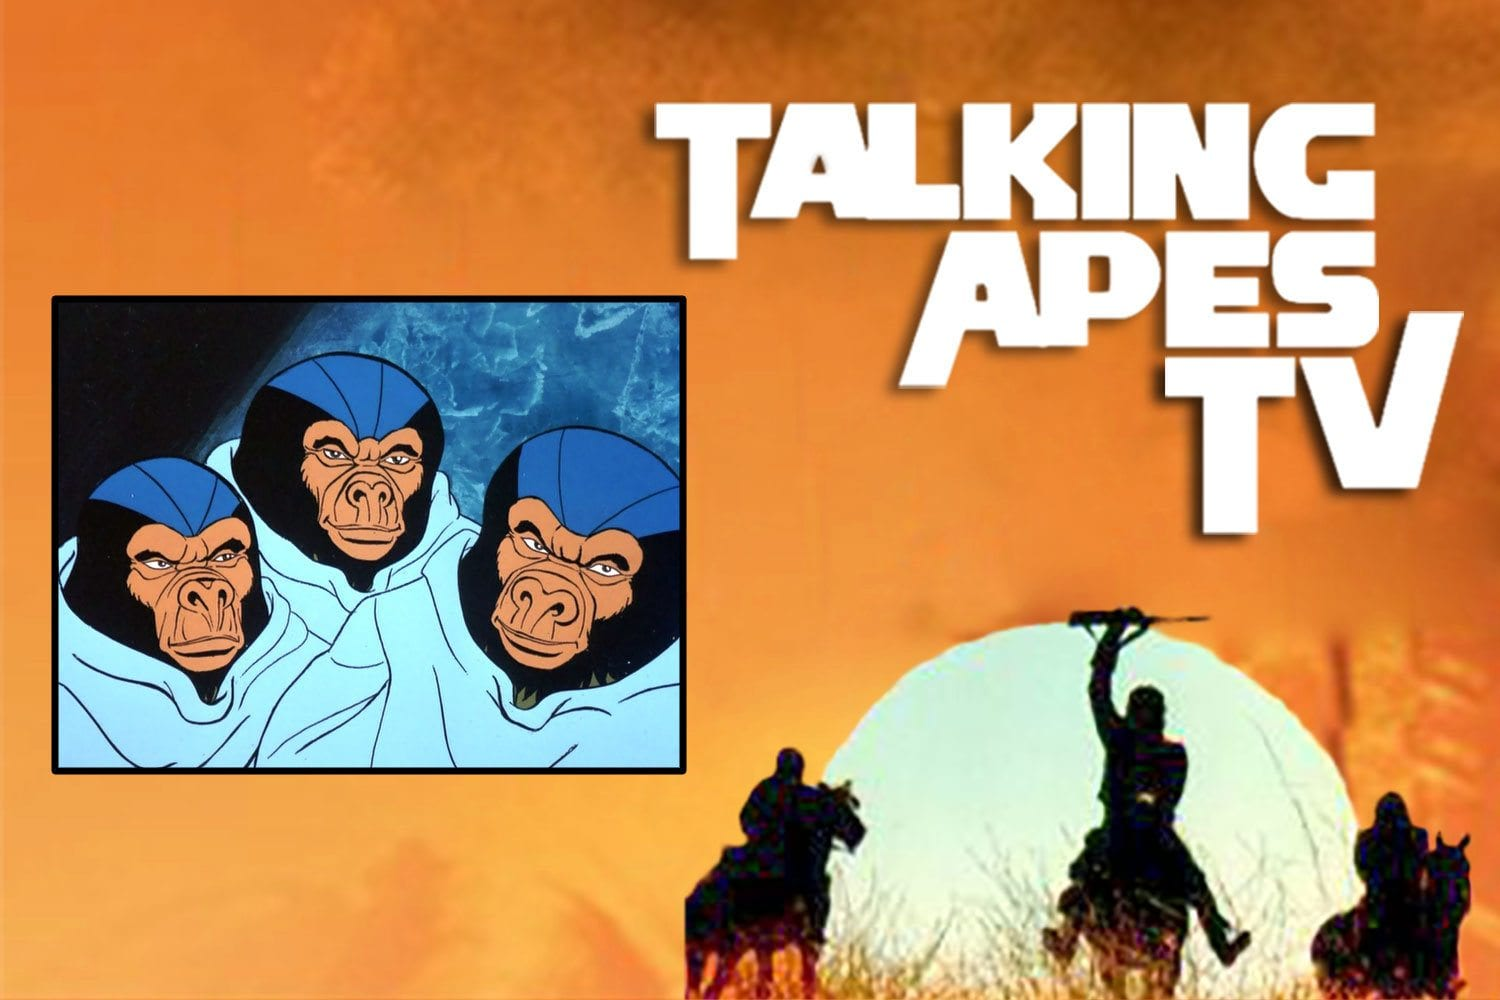 Talking Apes TV: Invasion of the Underdwellers